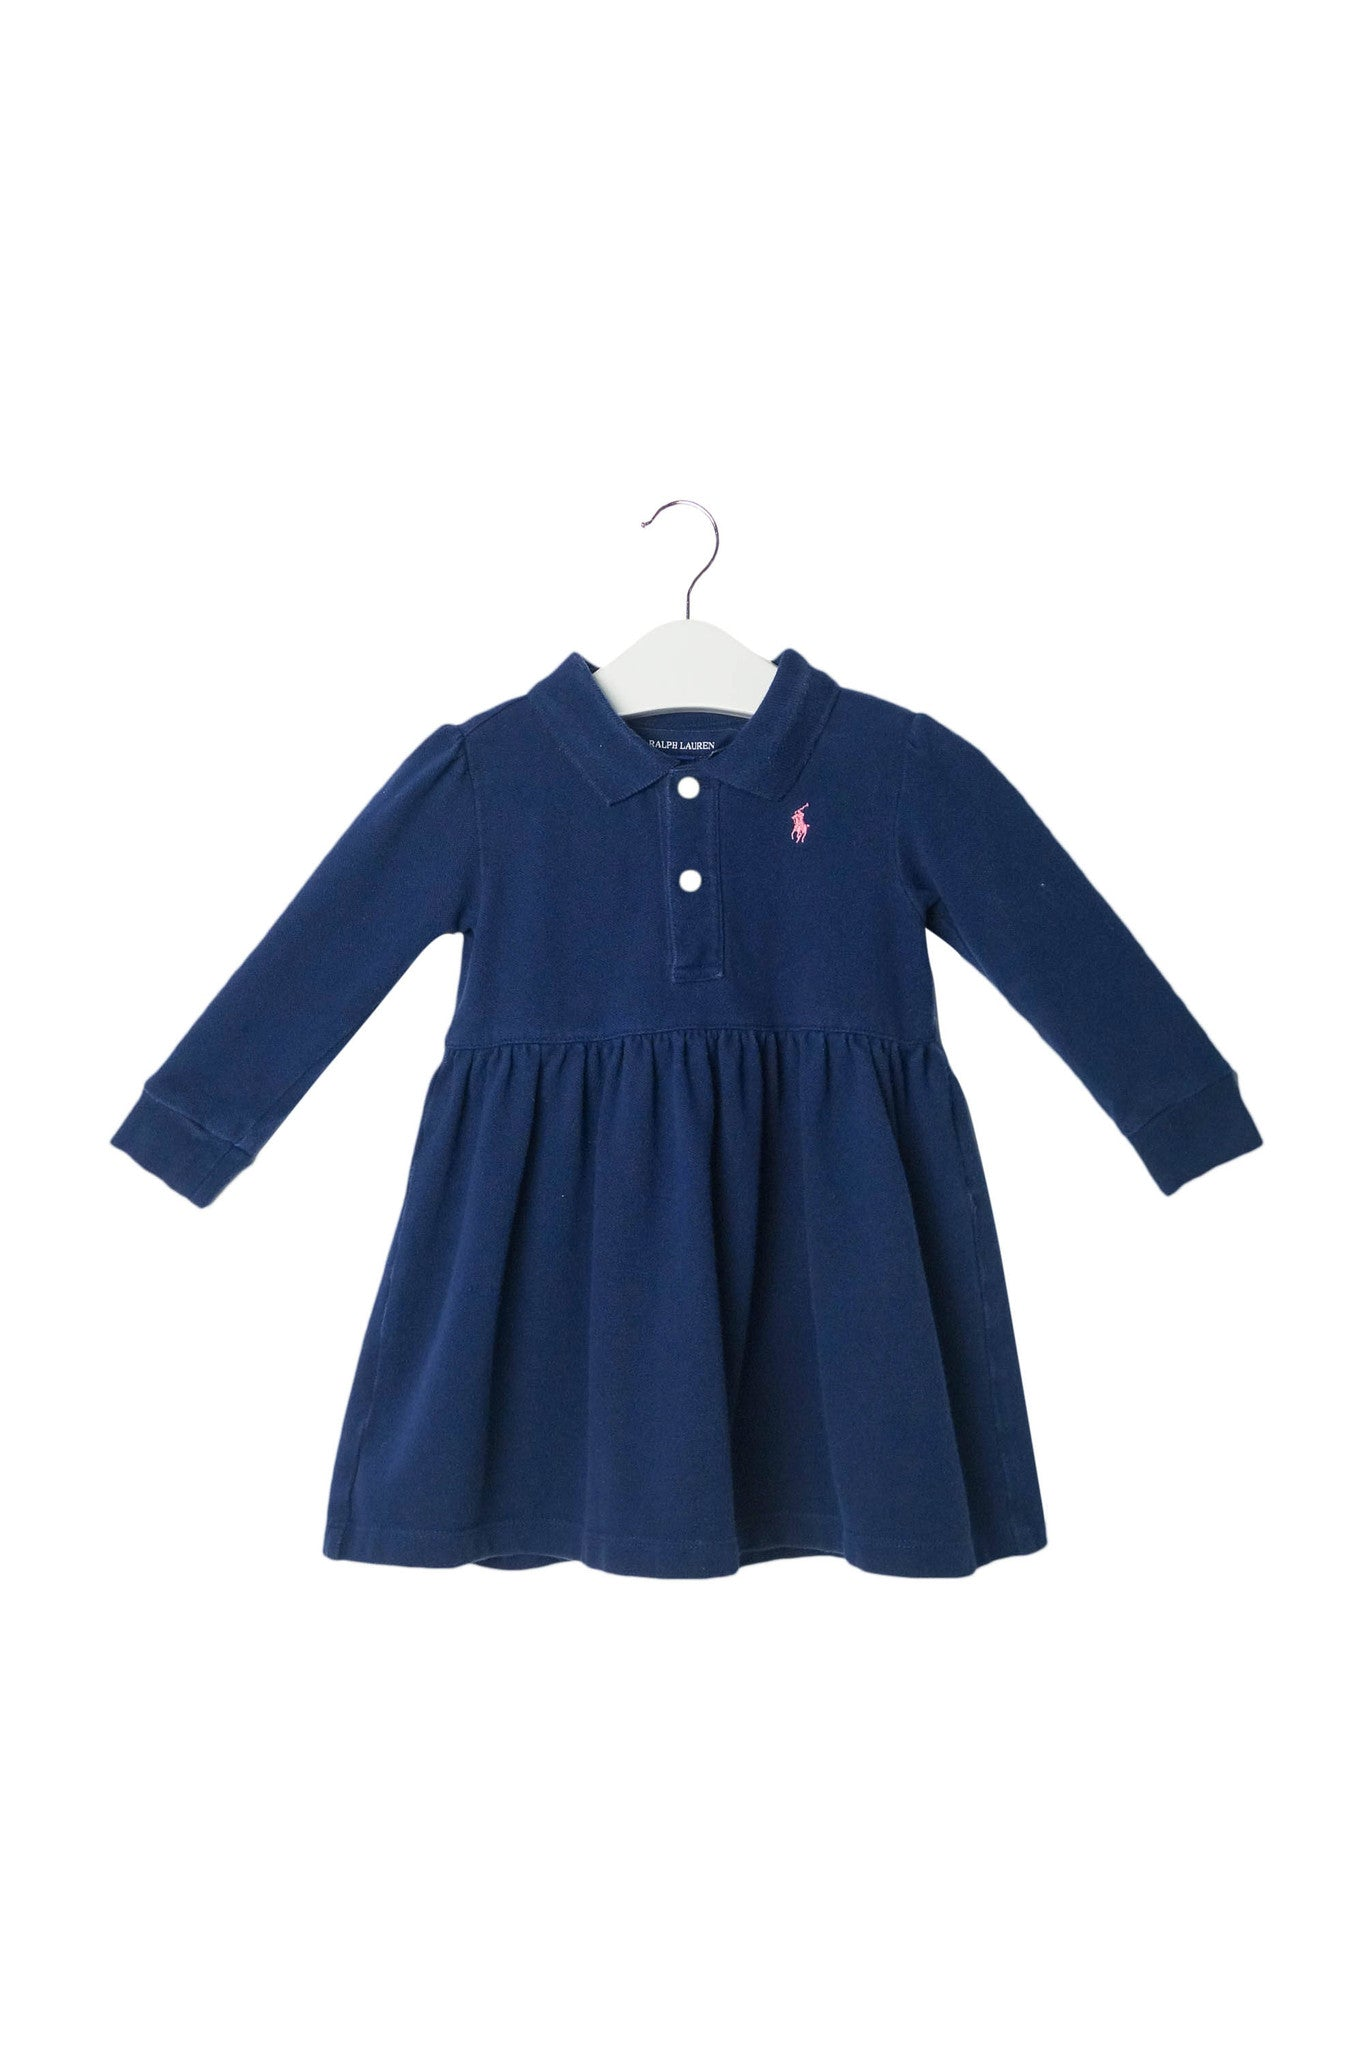 10003019 Ralph Lauren Baby~Dress 18M at Retykle